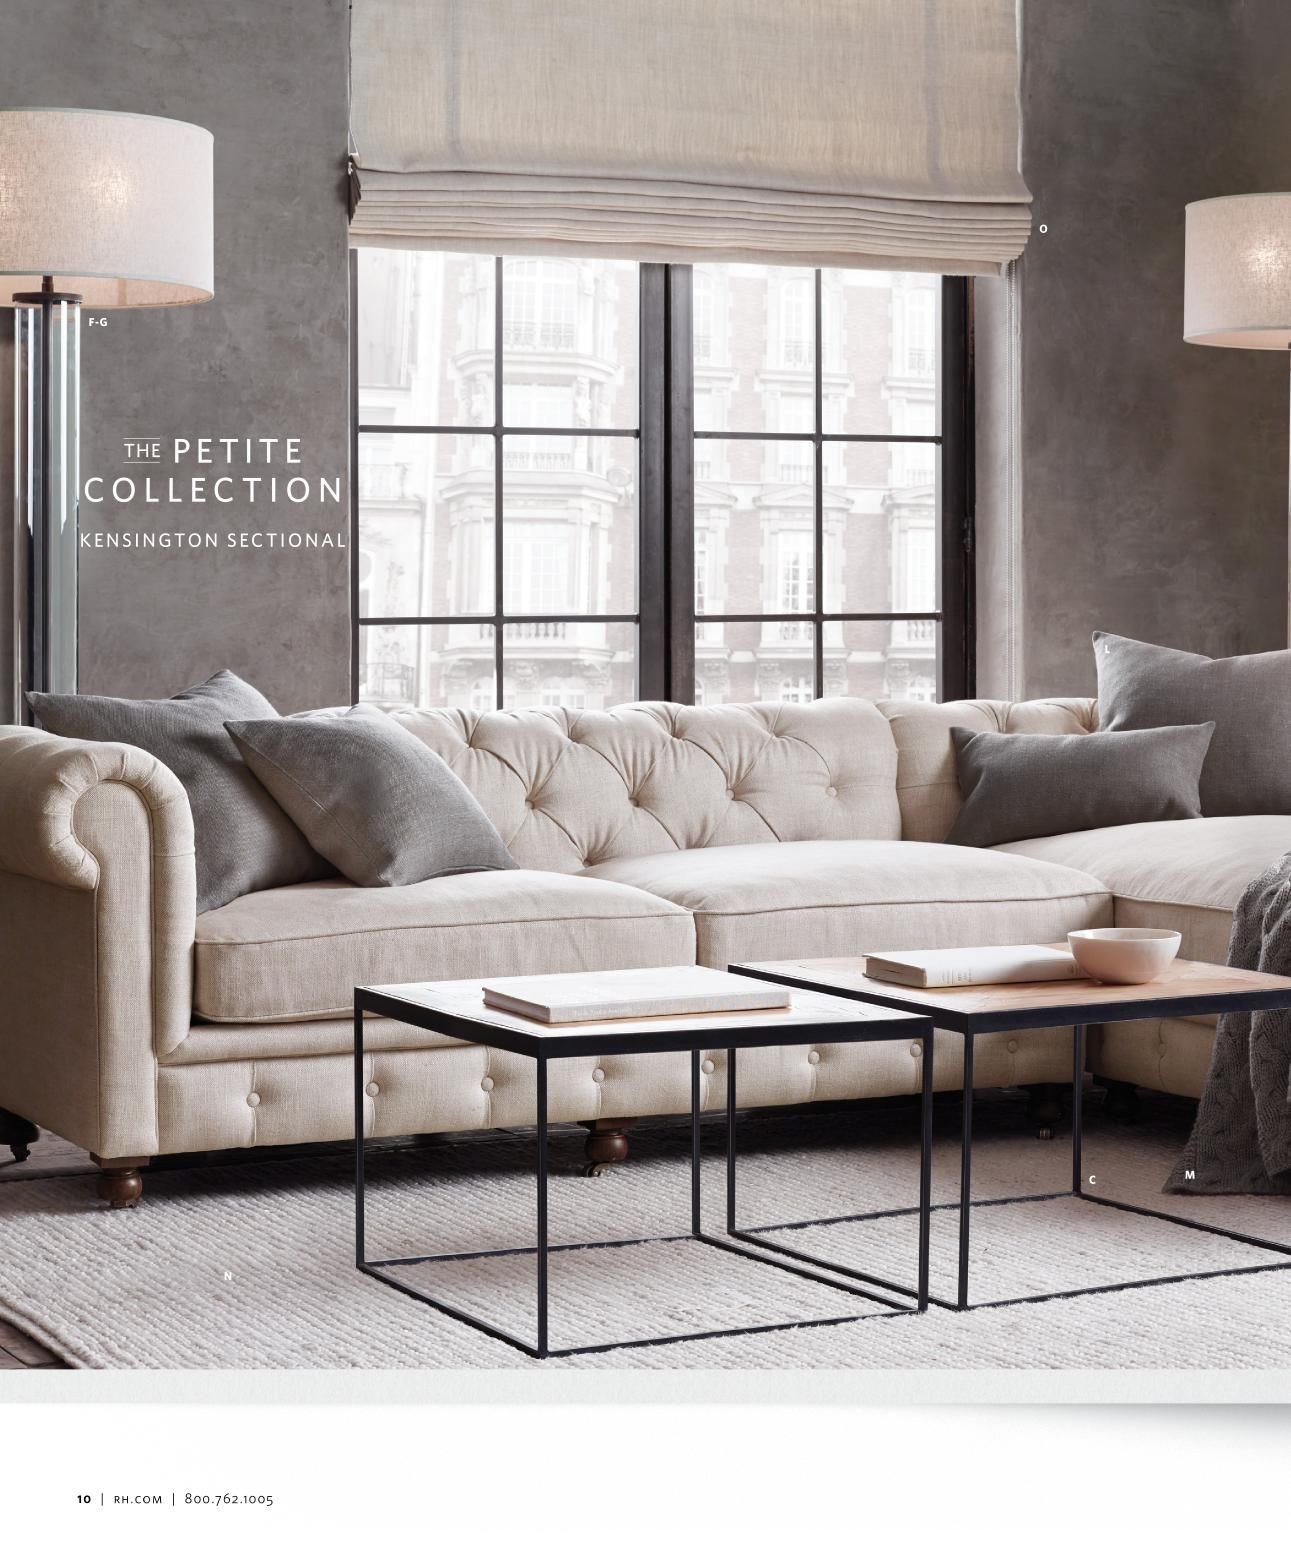 Restoration Hardware Petite Collection Tufted Sectional Quality Living Room Furniture Living Room Sofa Living Room Decor Apartment